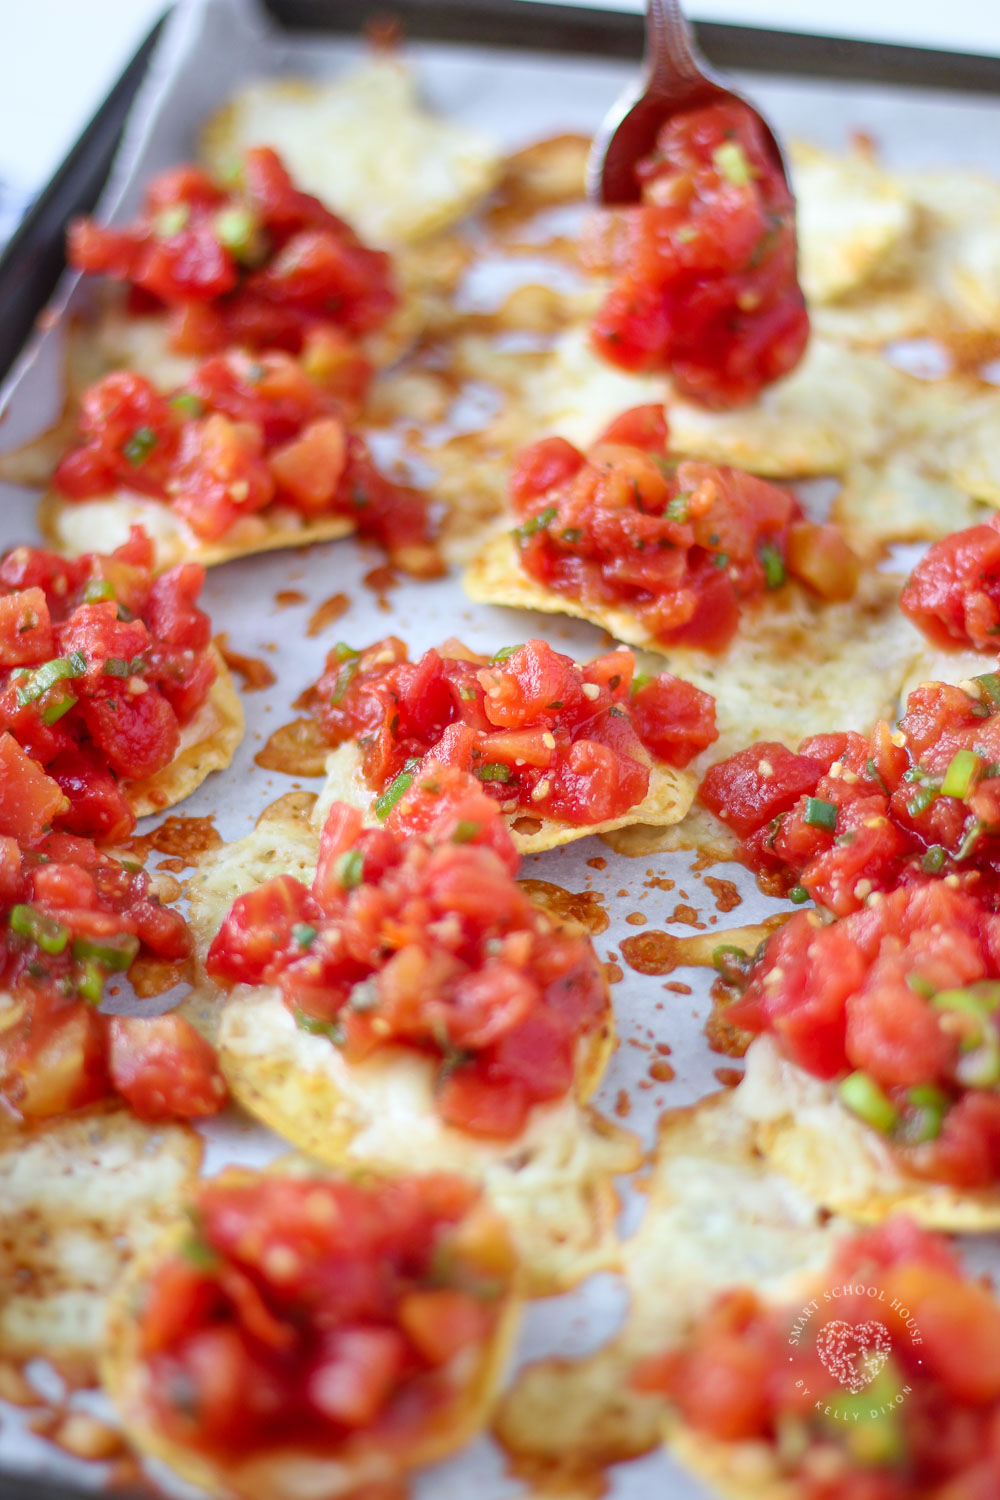 Tomato Bruschetta and Mozzarella Chips is always a crowd favorite over the holidays, at parties or even as a quick appetizer before dinner at home.